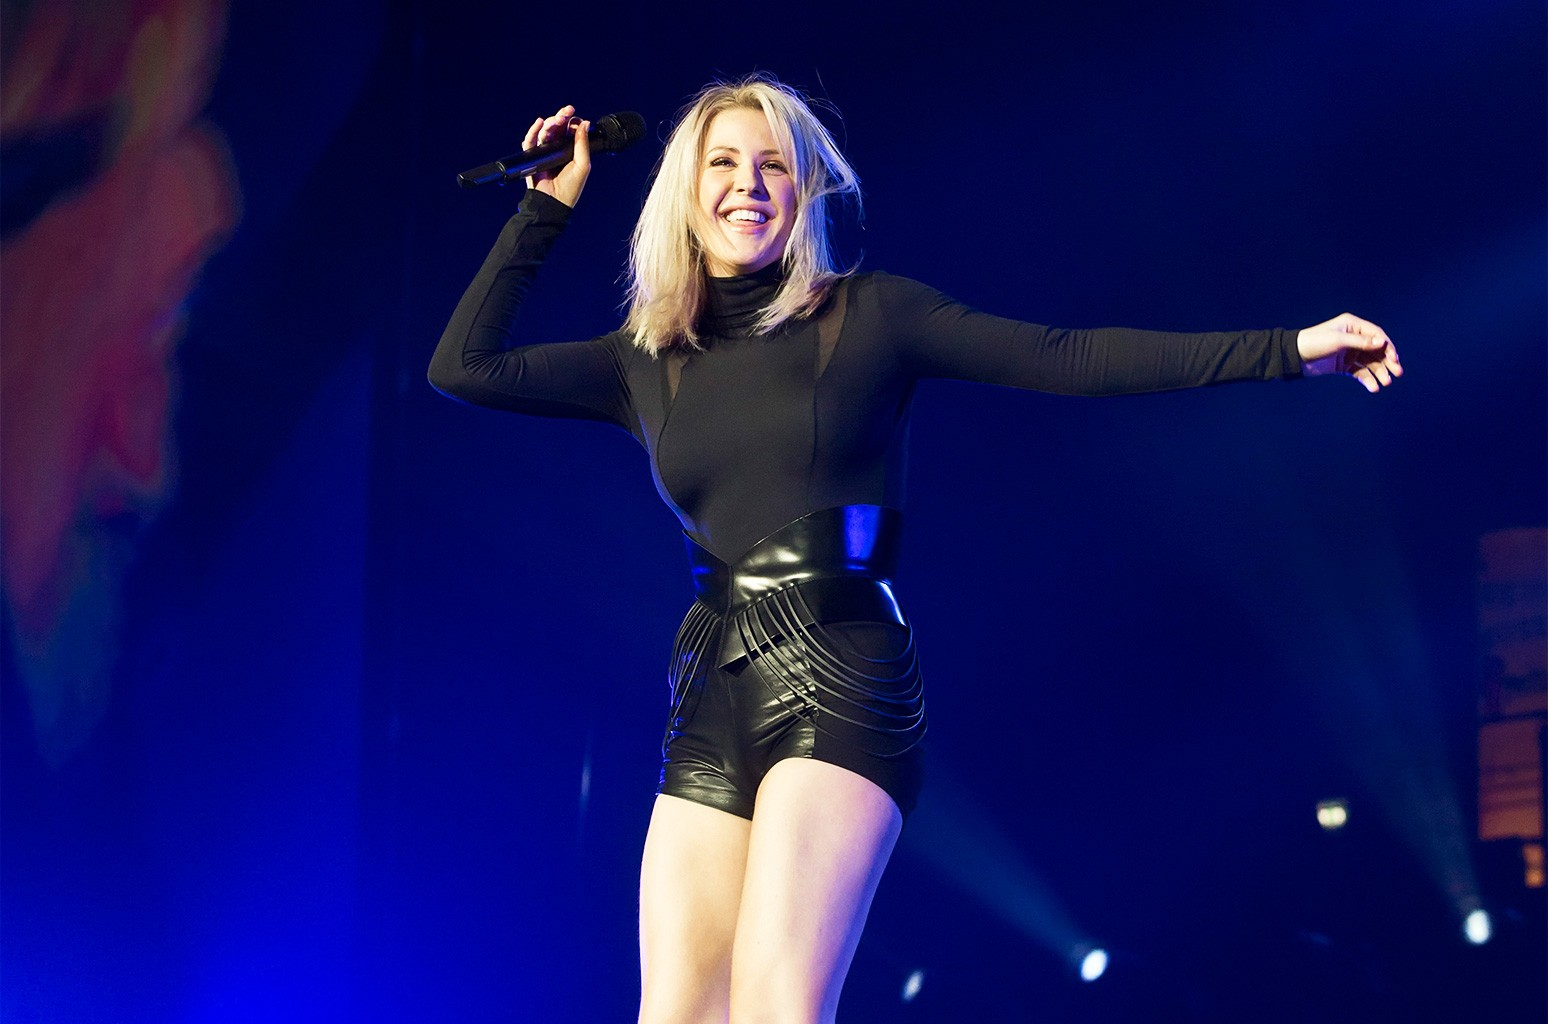 Ellie Goulding performs live during a concert at the Max-Schmeling-Halle on Jan. 22, 2016 in Berlin, Germany. (Photo by Frank Hoensch/Redferns via Getty Images)